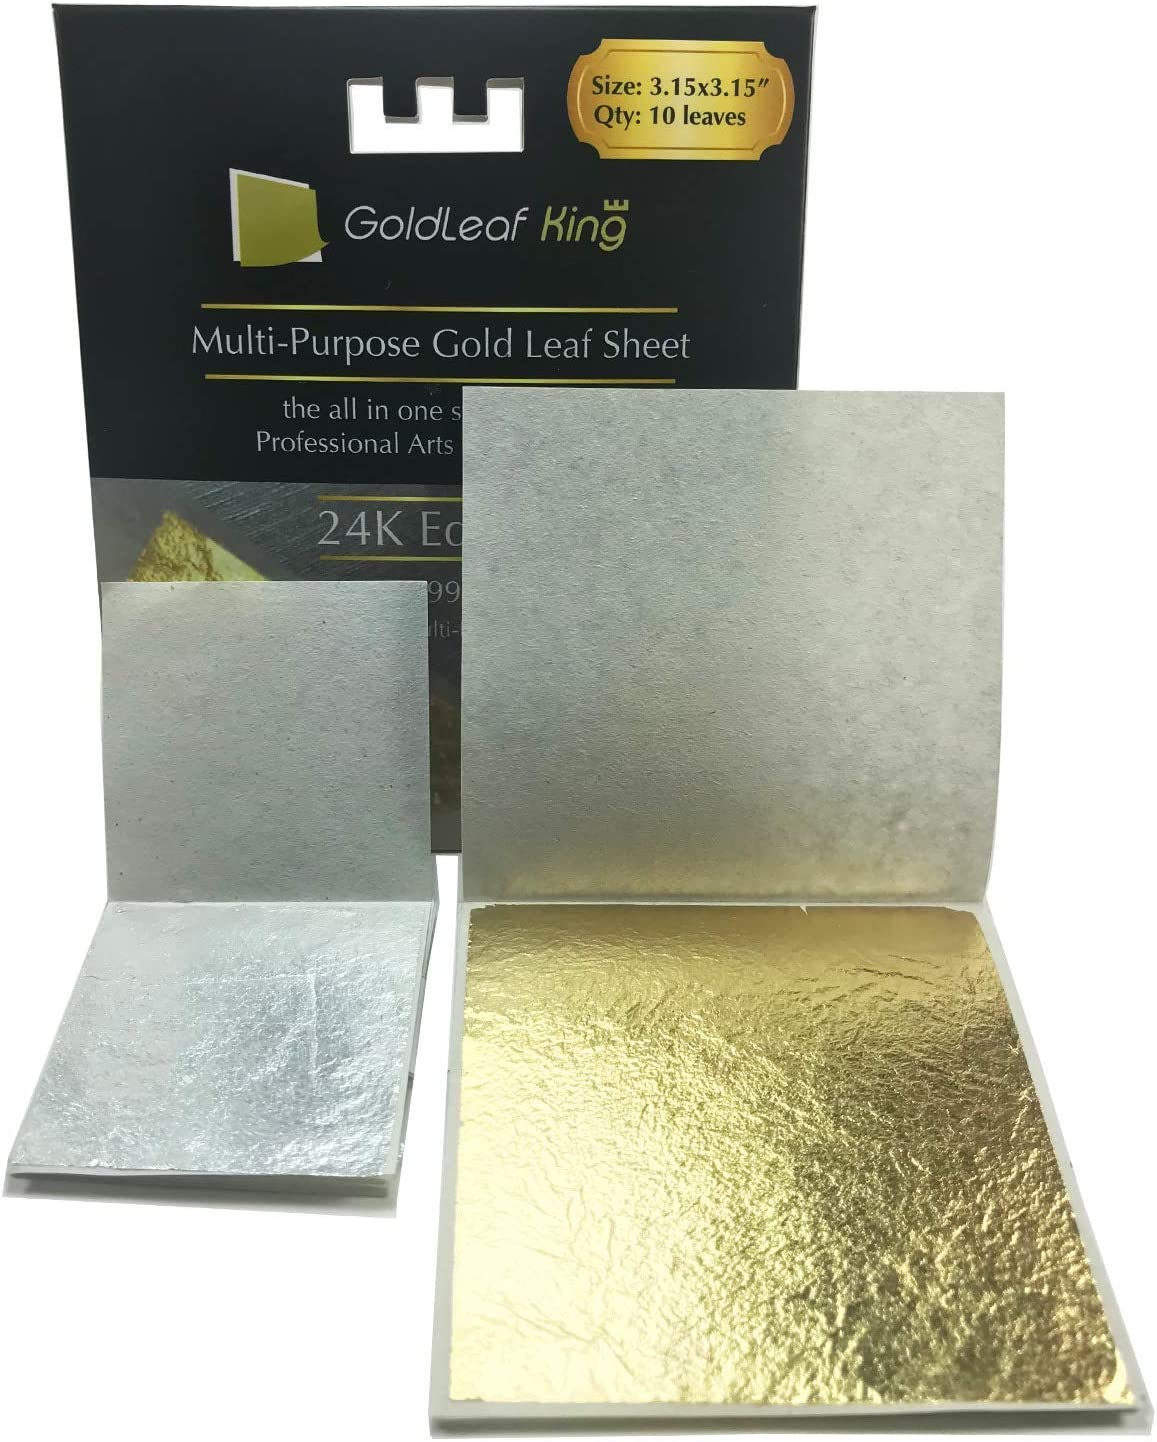 24K Edible Gold Leaf Sheets x 10 Sheet | Large 3.15 inches | Goldleafking | edibles Edible Paper Edible Cake Decorations Edible Paint 24k Gold foil Paper Gold Sheets | + Free Silver Leaf x 10